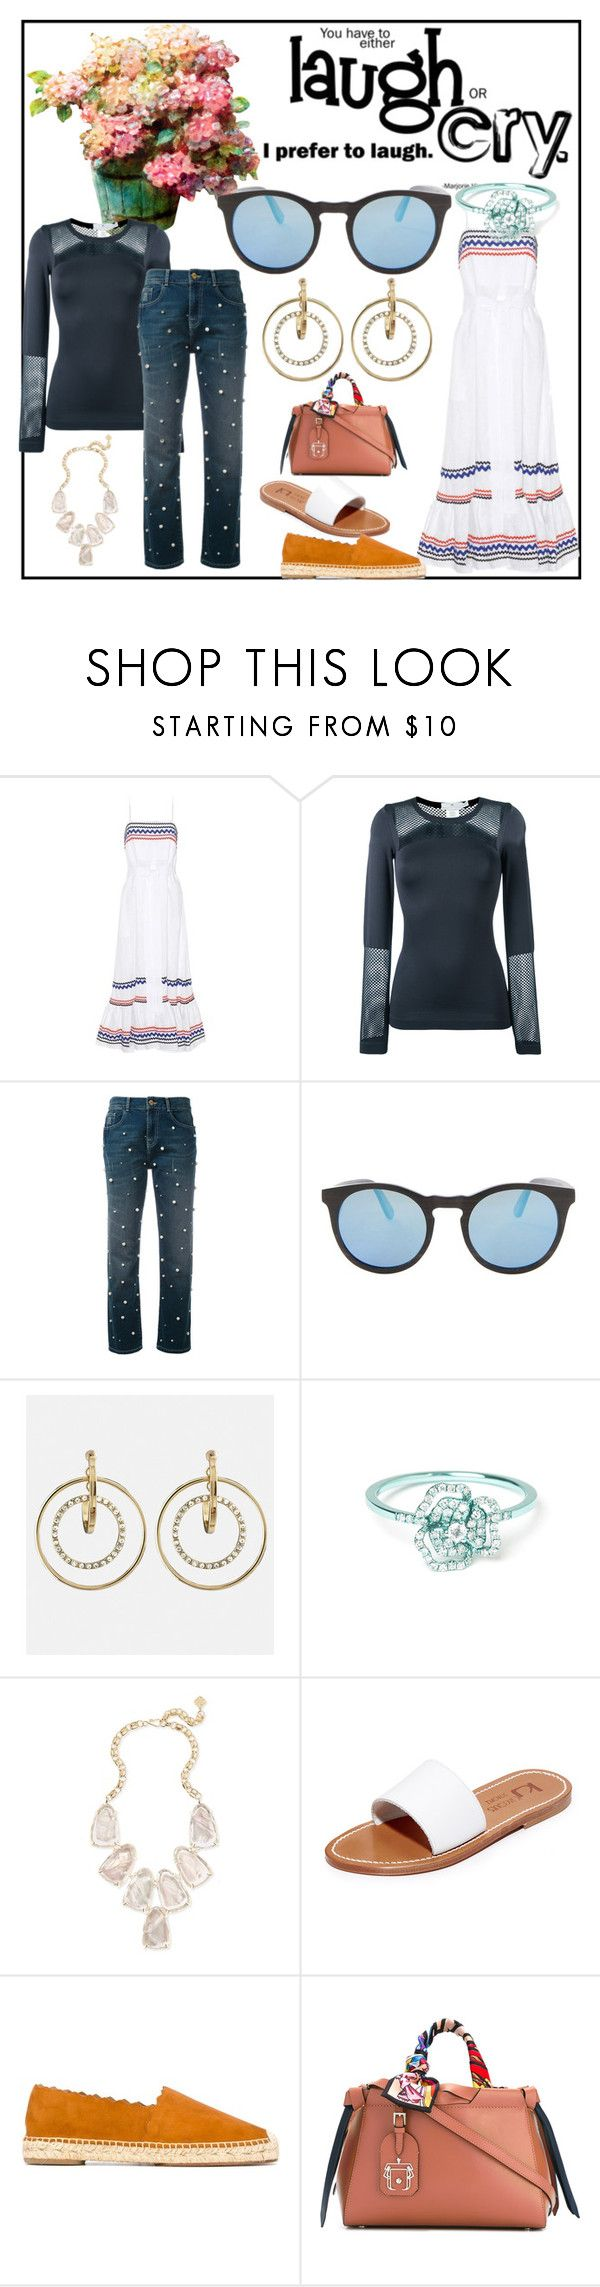 """Fashion is fad but style is eternal"" by denisee-denisee ❤ liked on Polyvore featuring Lisa Marie Fernandez, adidas, Essentiel, Avenue, AS29, Kendra Scott, K. Jacques and Paula Cademartori"